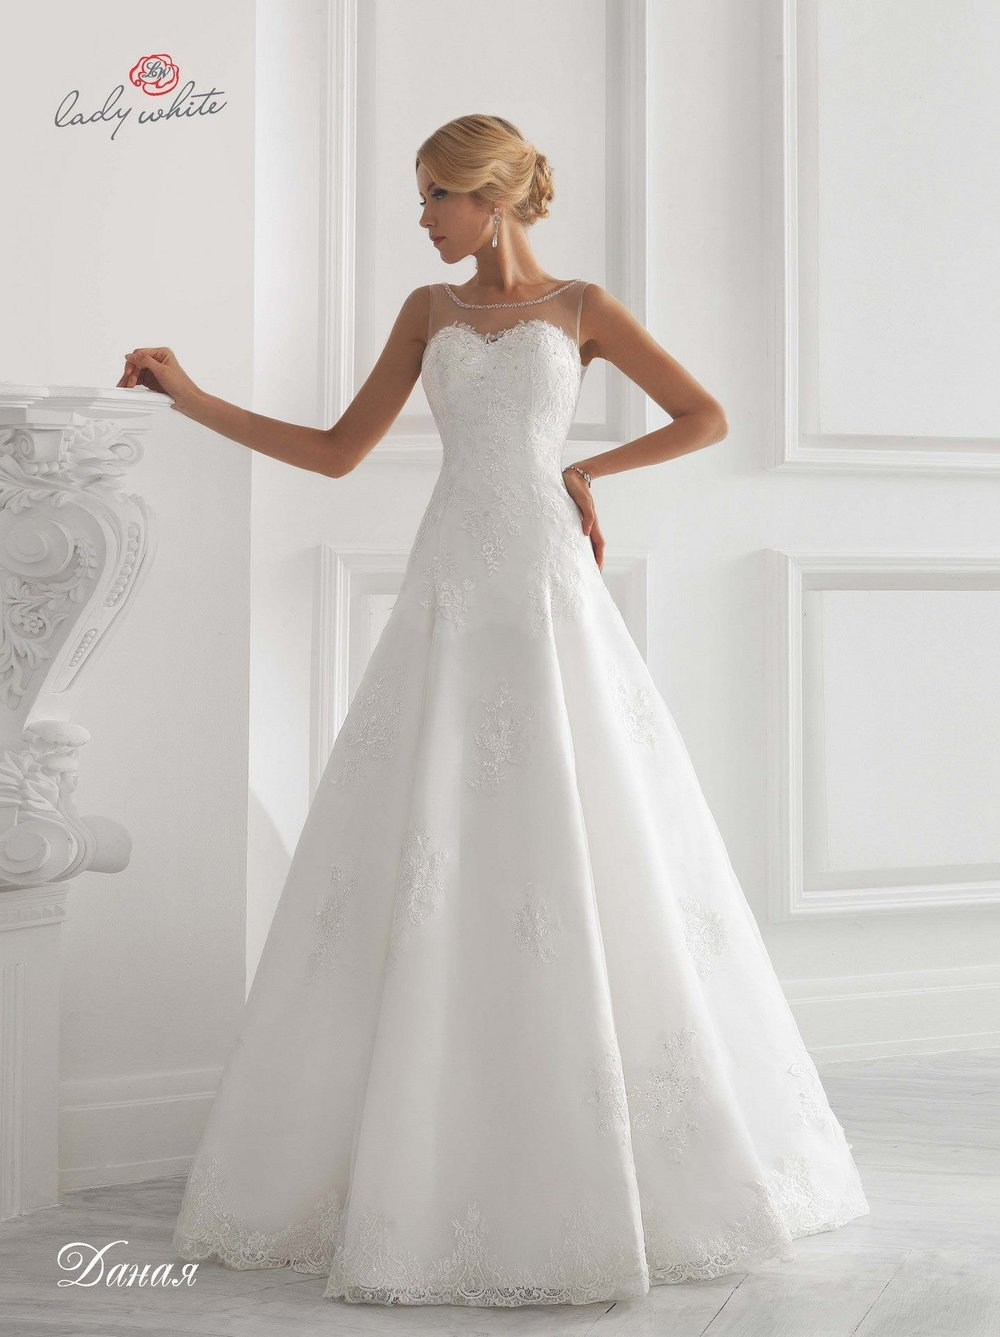 DANAYA wedding dress $400